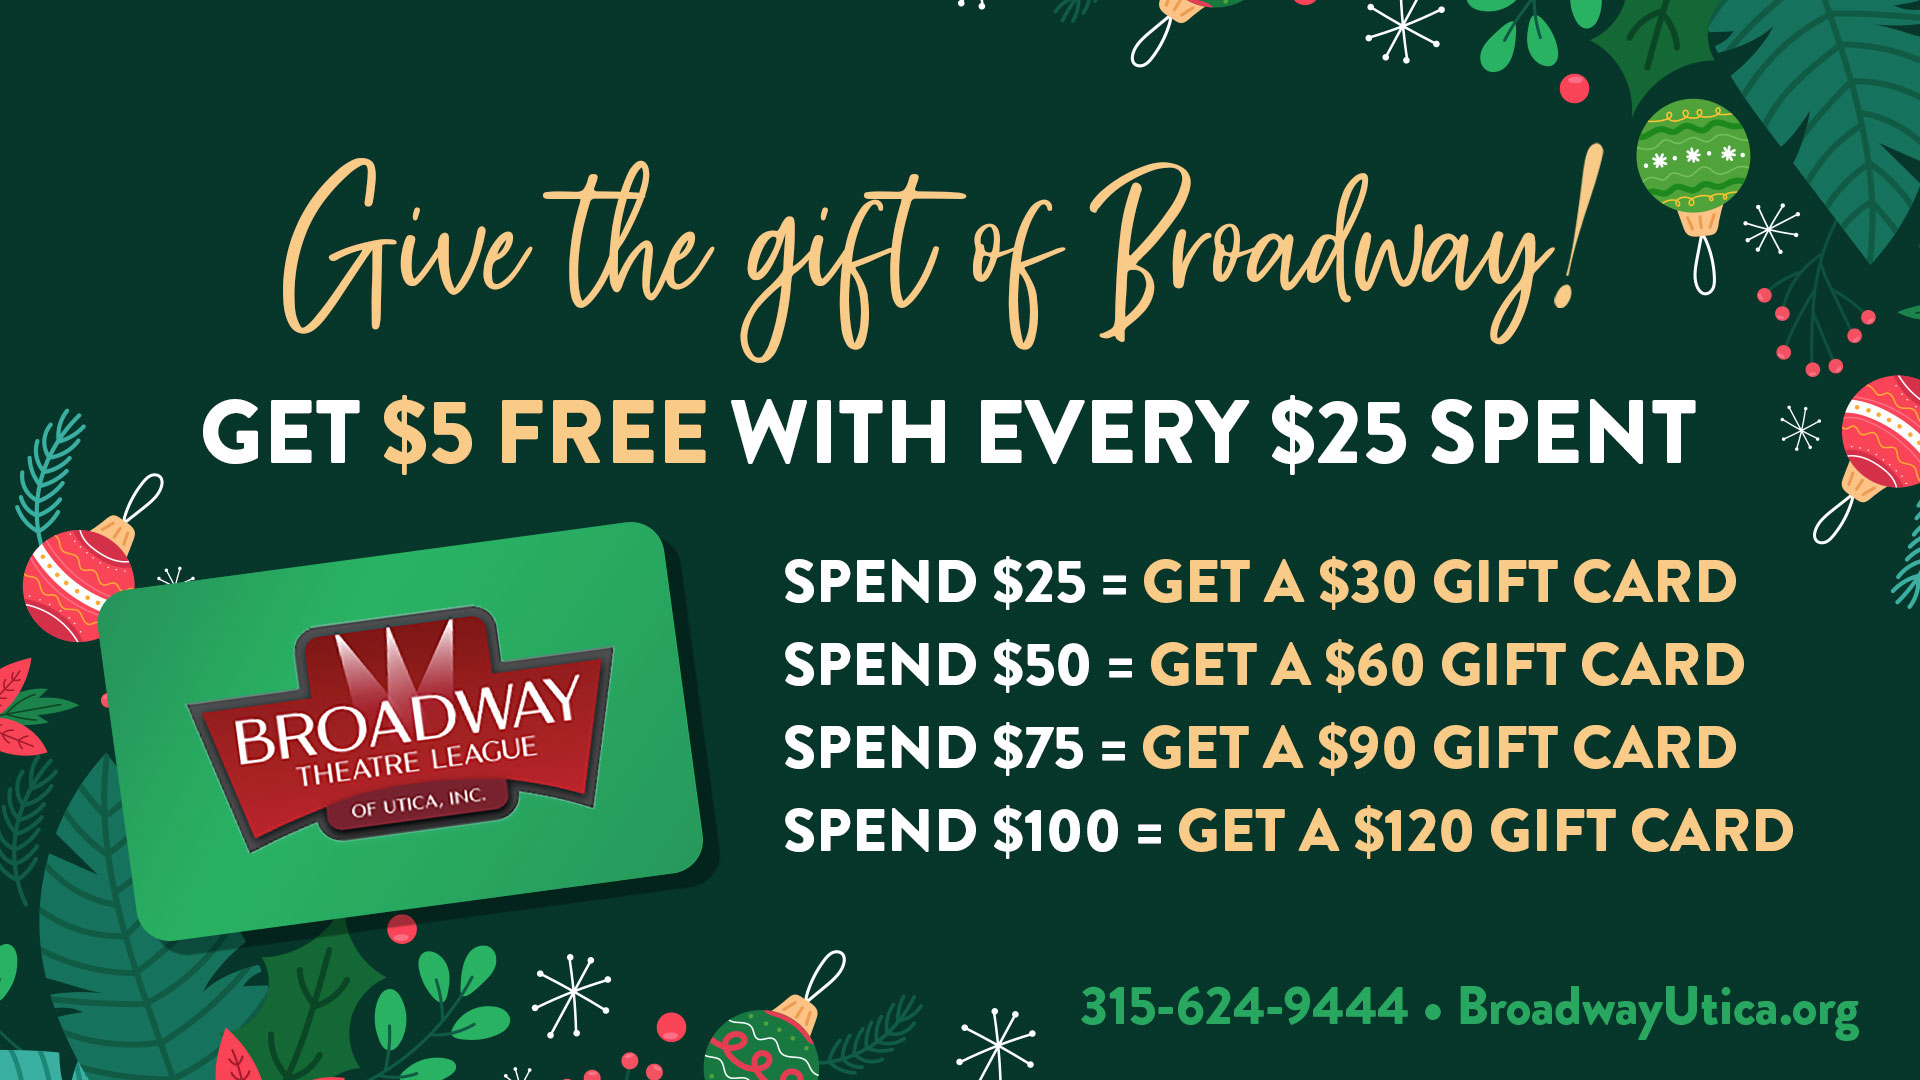 Give the Gift of Broadway! Get $5 FREE with every $25 spent!